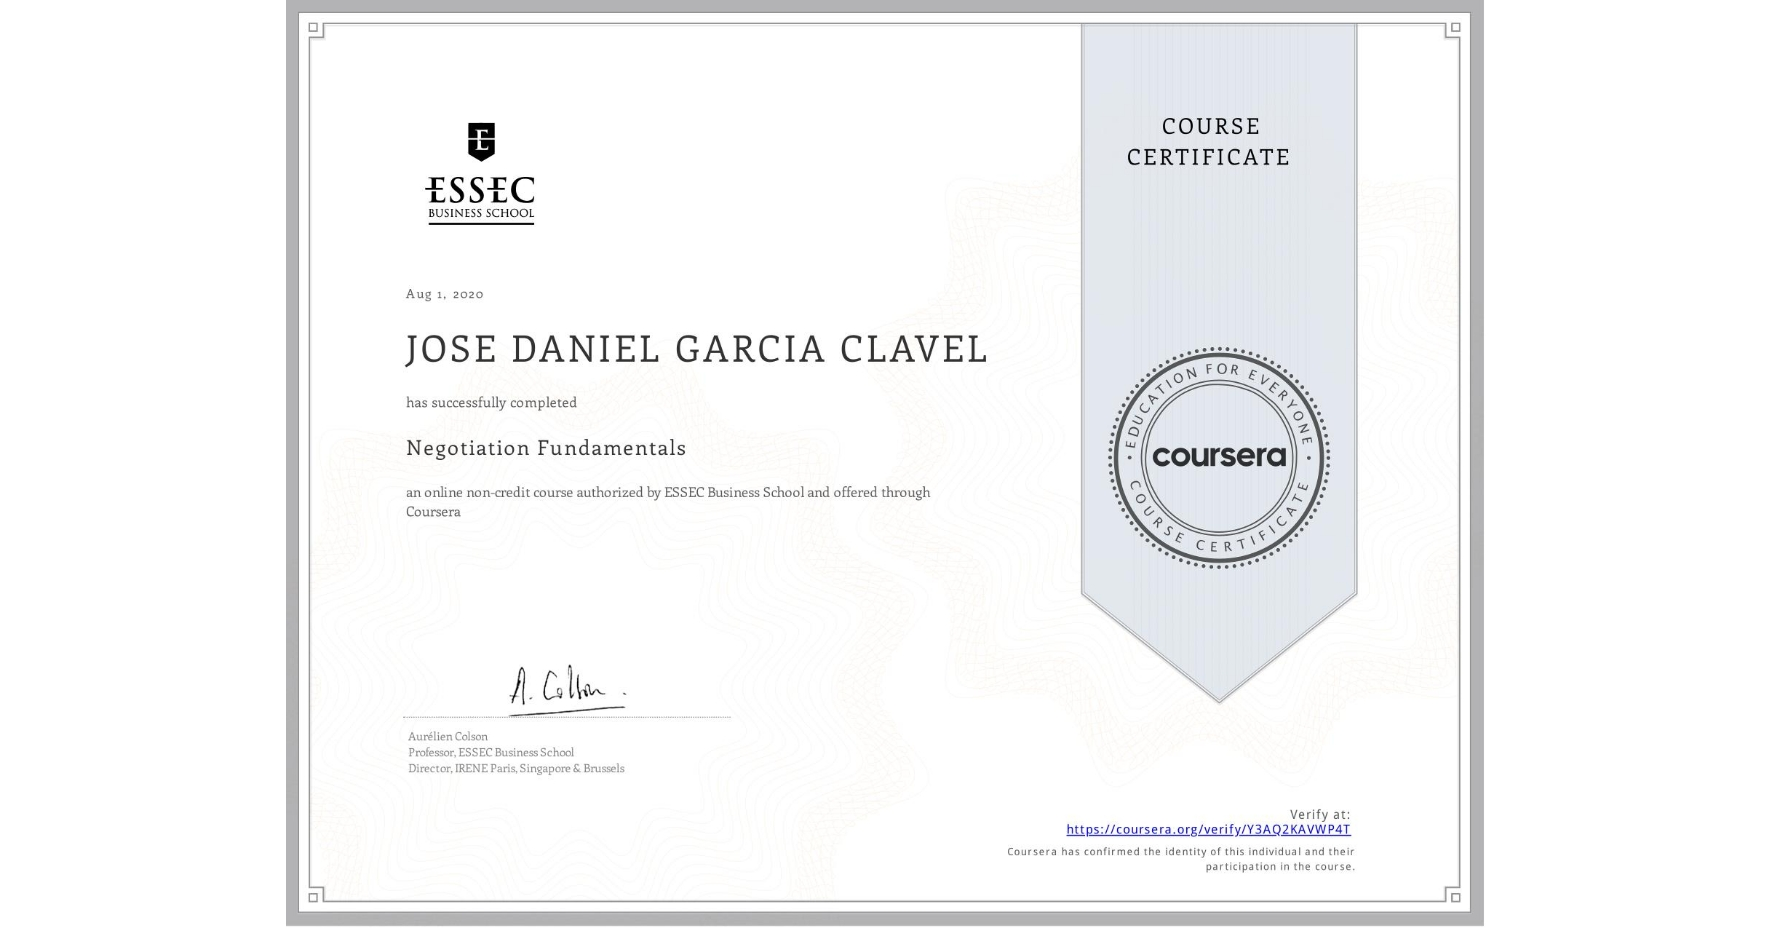 View certificate for JOSE DANIEL GARCIA CLAVEL, Negotiation  Fundamentals, an online non-credit course authorized by ESSEC Business School and offered through Coursera